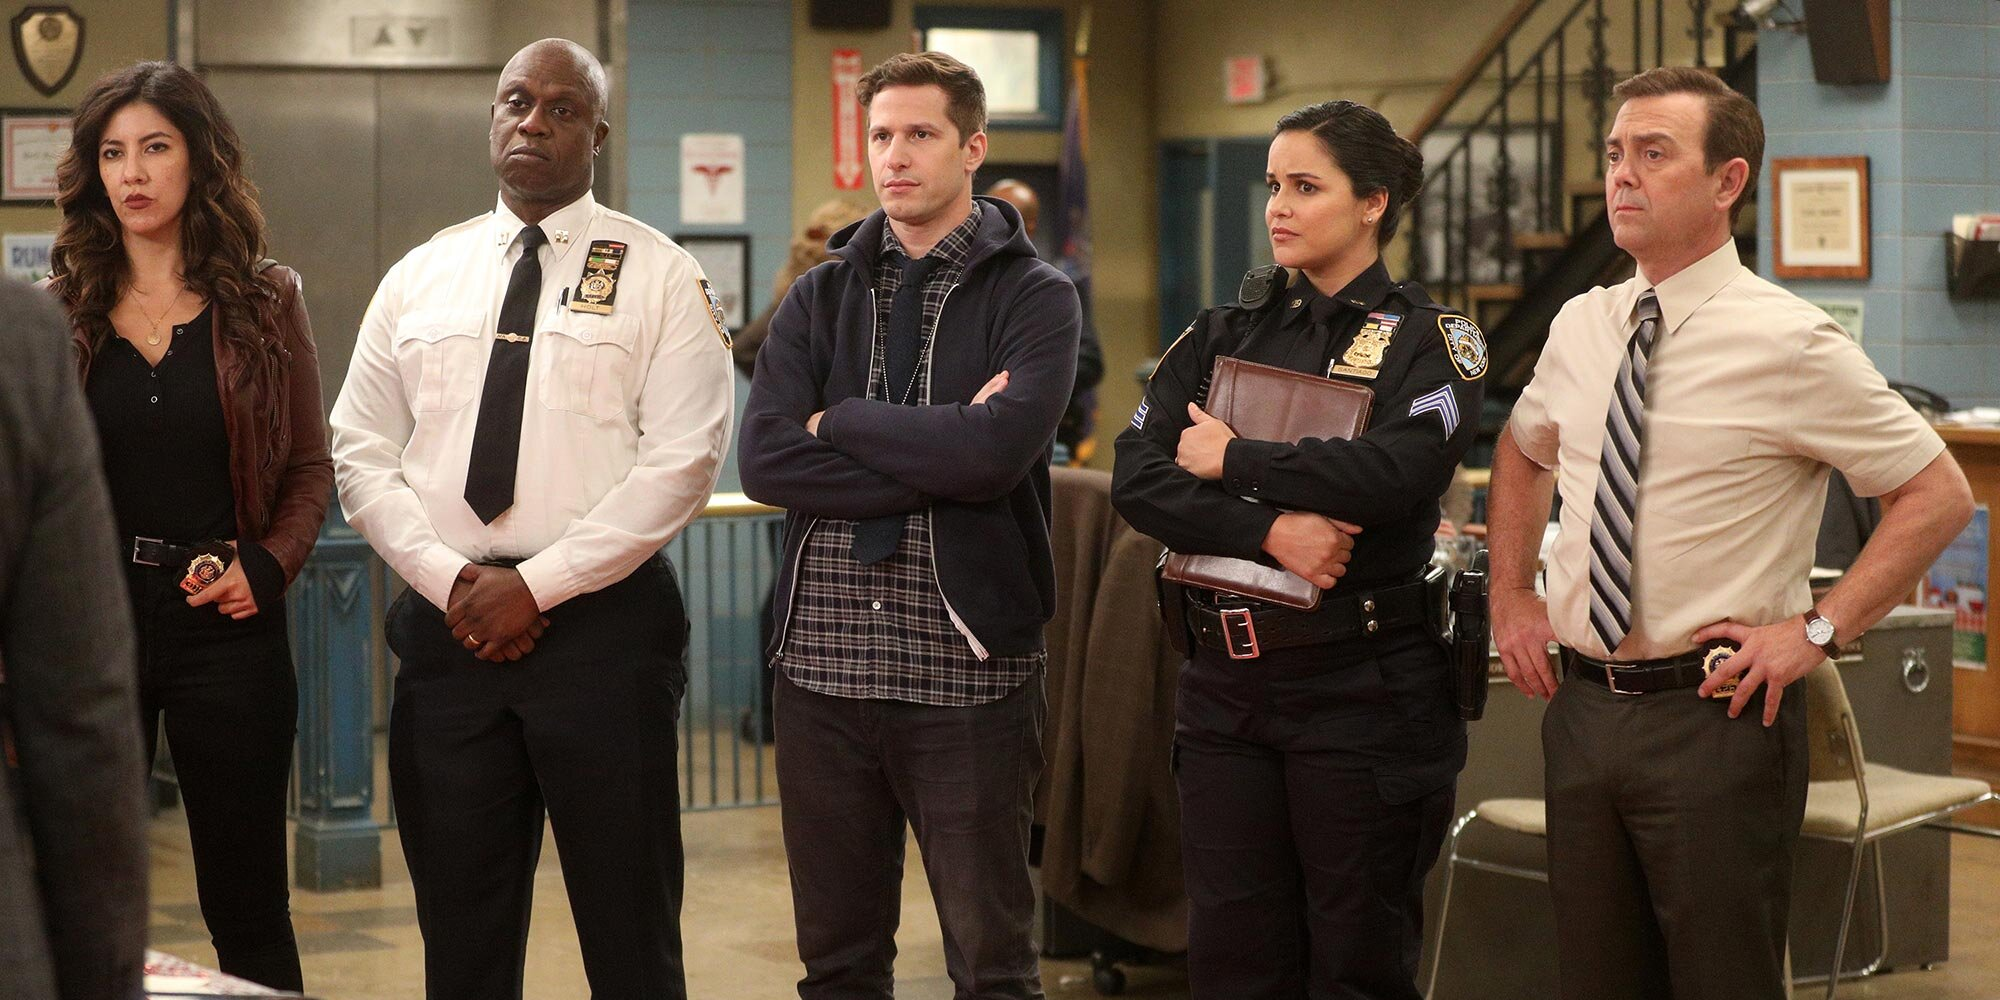 Brooklyn Nine-Nine delayed, to end after season 8 - Entertainment Weekly